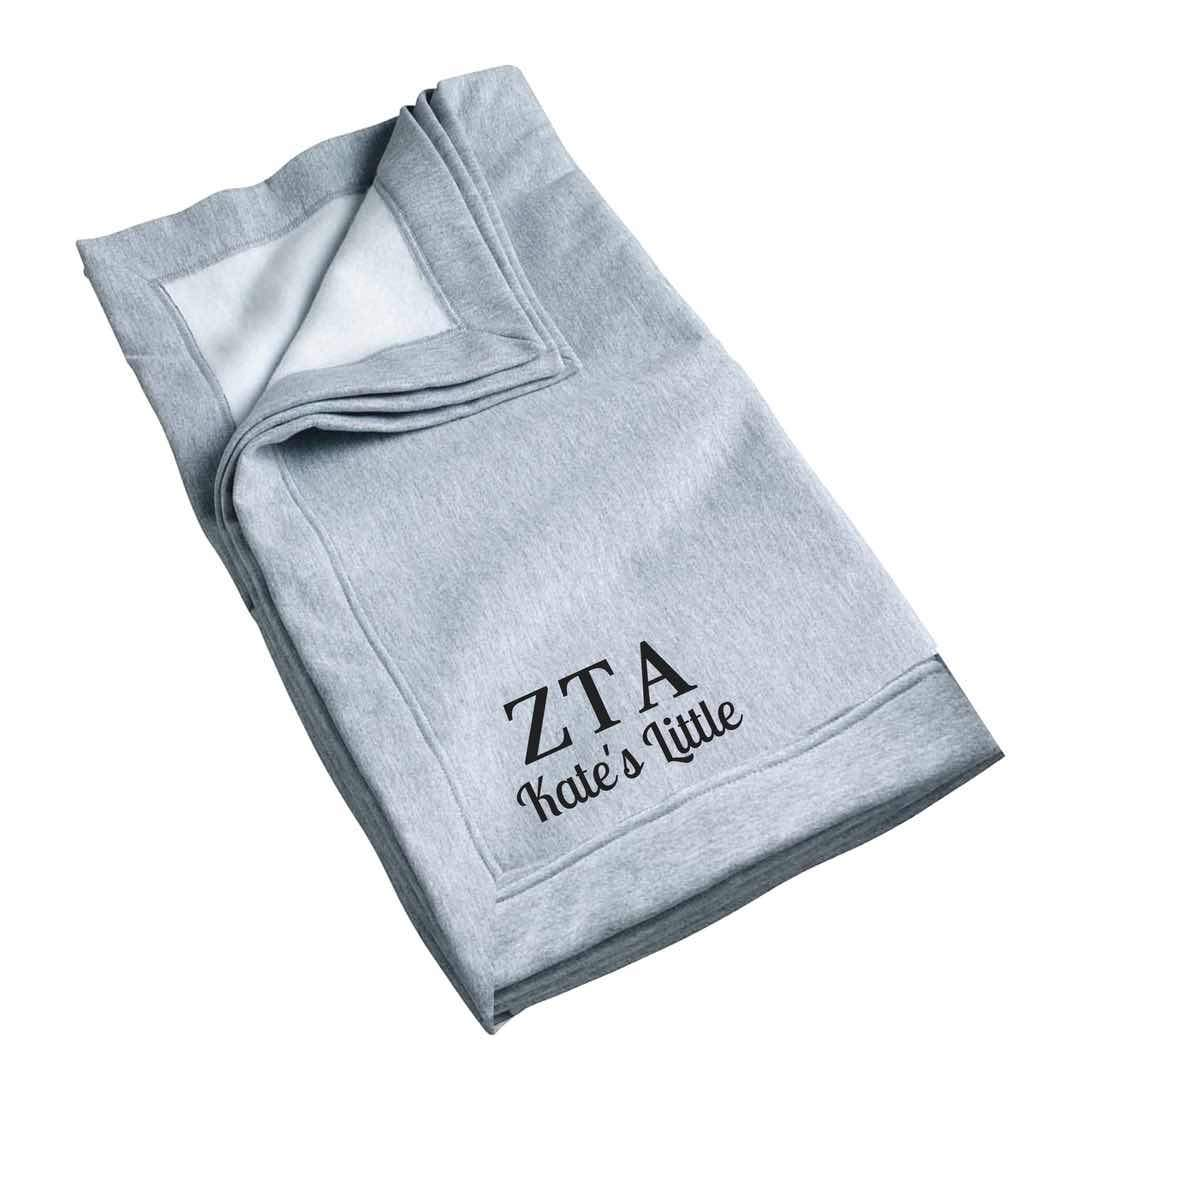 Zeta Tau Alpha Little Blanket, Recommended One Size Fits All Personalized Big Little Gift